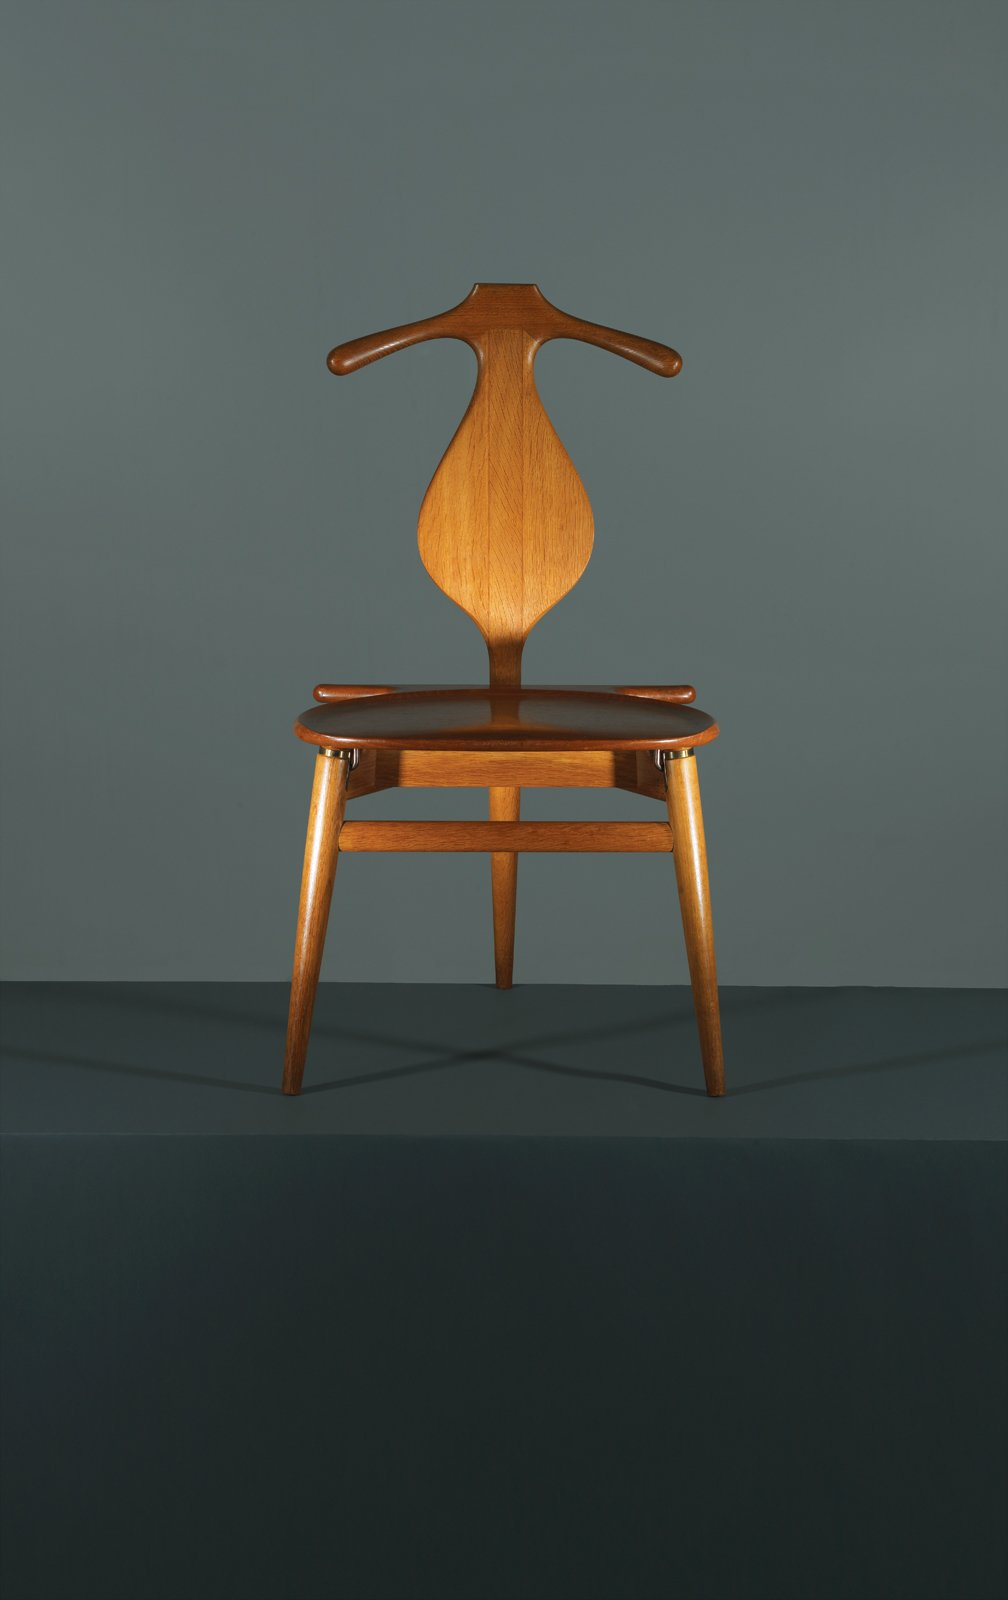 Combining the best traits of a bench and a butler, Hans Wegner's 1953 Valet chair is the one piece of midcentury-modern furniture that the fastidiously turned-out chap overlooks at his peril. Marrying formal elegance—these handsome curves have been handcrafted in PP Møbler's Danish workshop since it took over production in 1982—with a surprising functionalism, the Valet chair all but does away with the need for Jeeves. Initially a four-legged chair, Wegner decided to trim the final product and arrived at a tripod design, though he maintained the initial design when Danish King Frederick IX requested his own. Manufactured by PP Møbler.